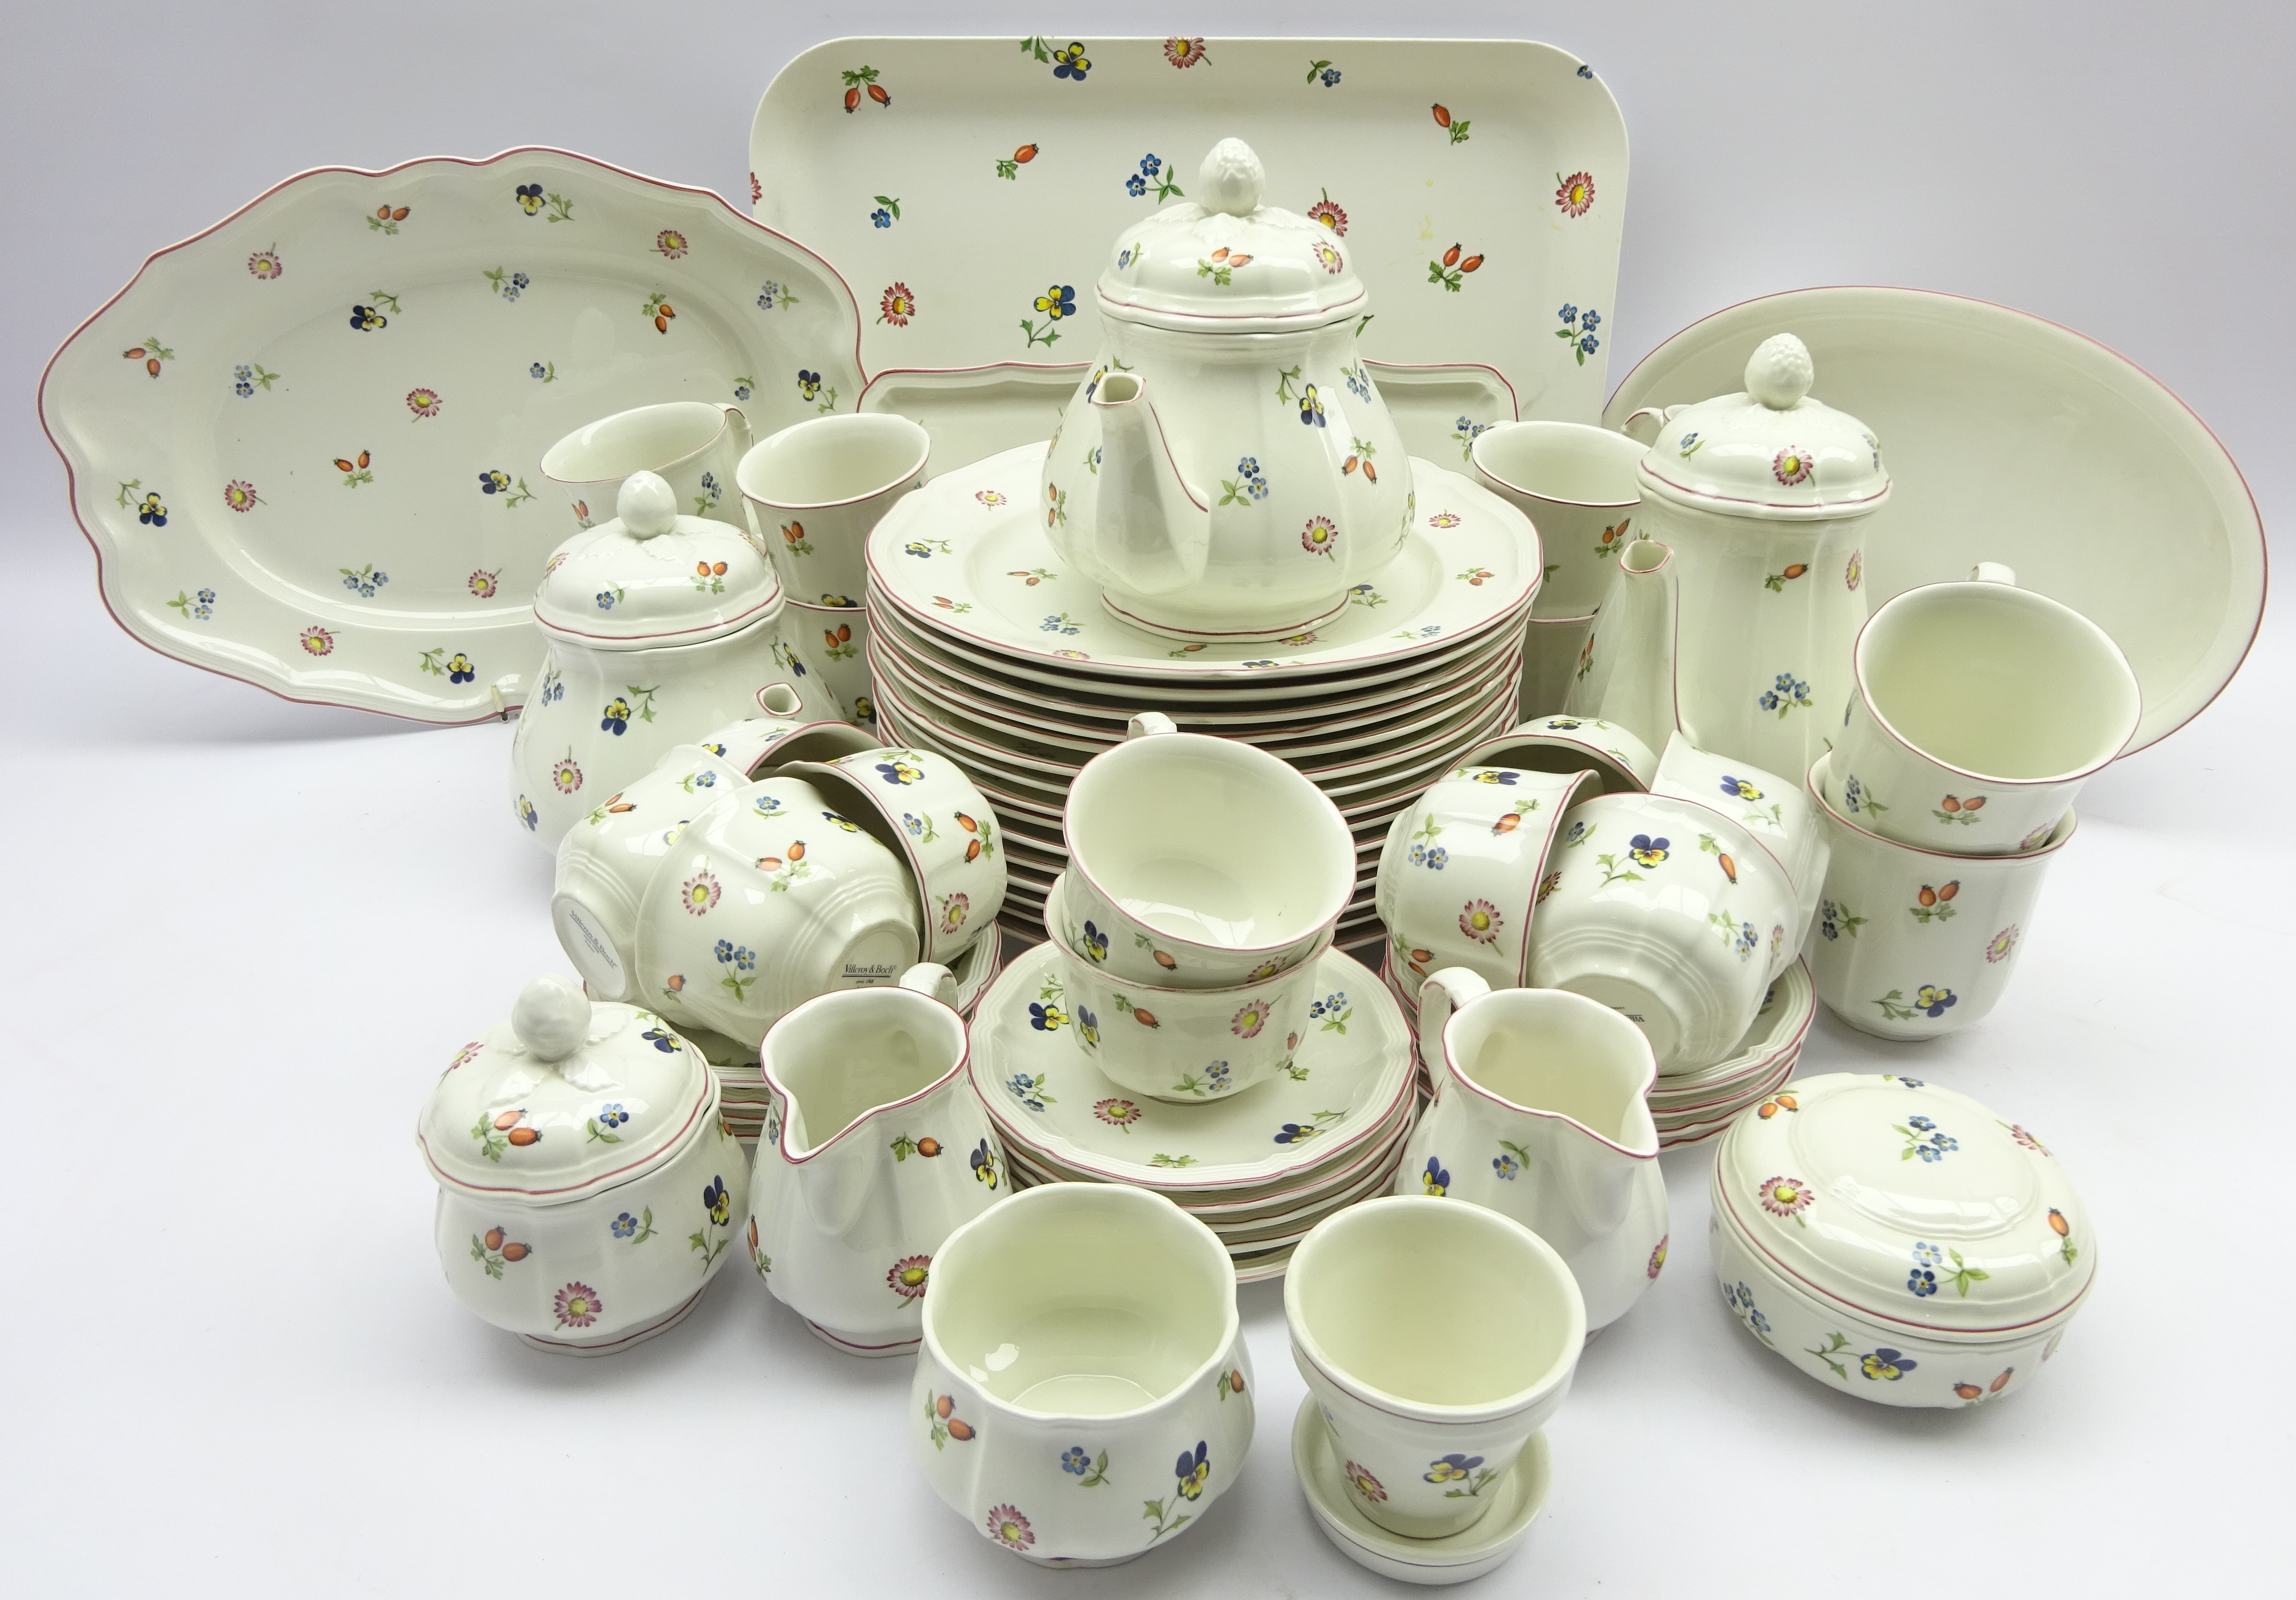 Lot 20 - Villeroy & Boch 'Petite Fleur' comprehensive dinner, tea and coffee service for ten persons,